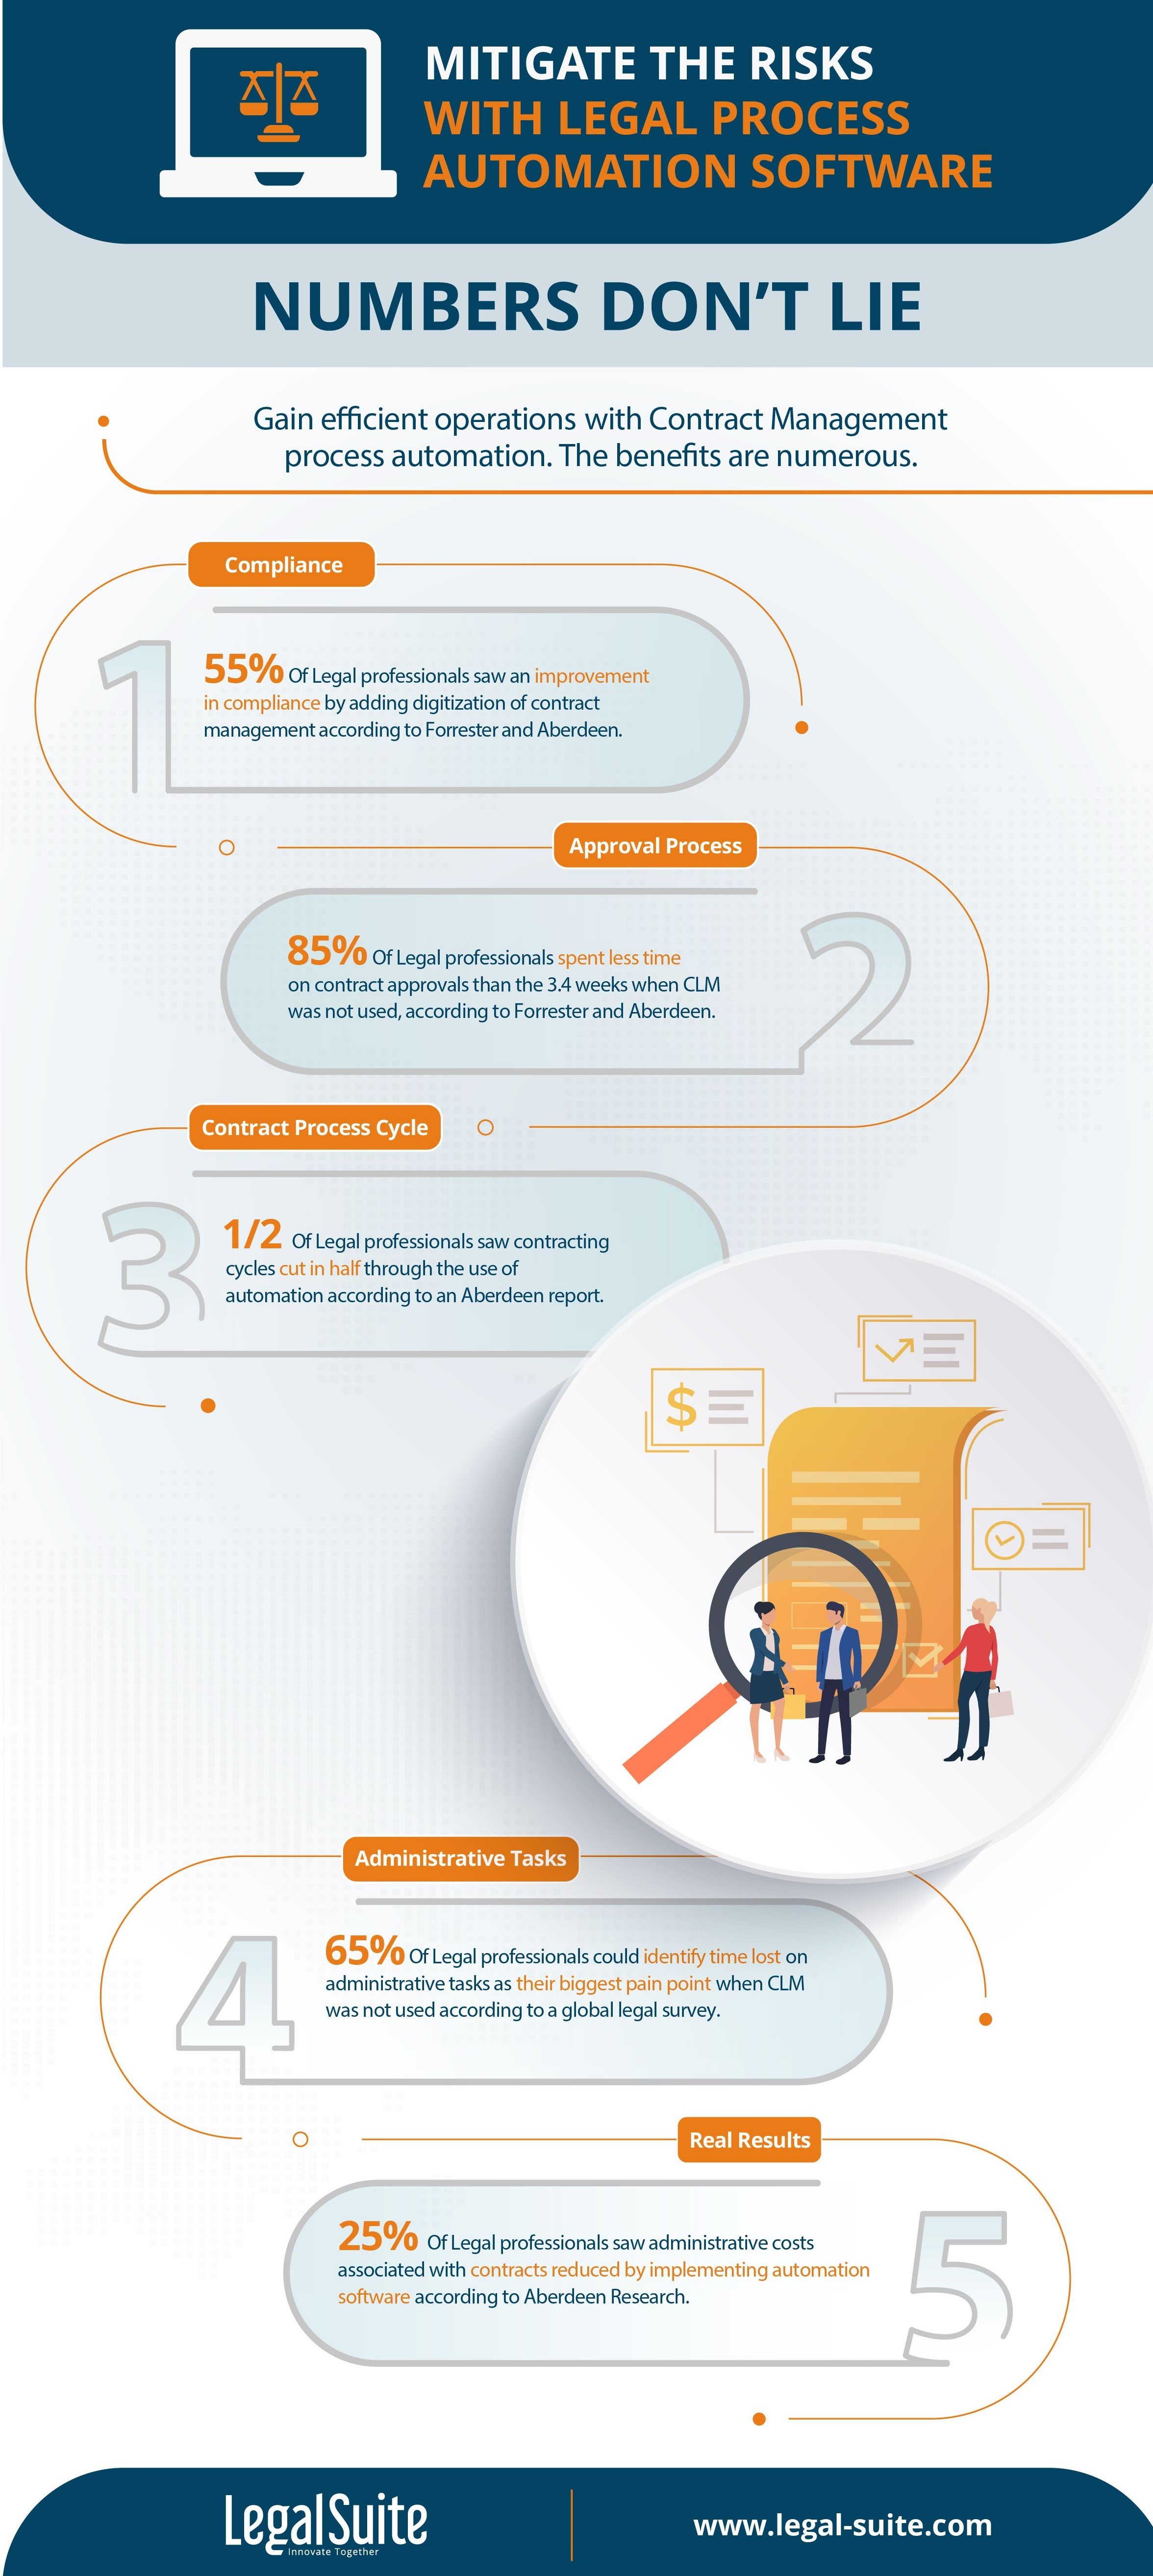 legalsuite_numbers-dont-lie_infographic-finalv4.jpg